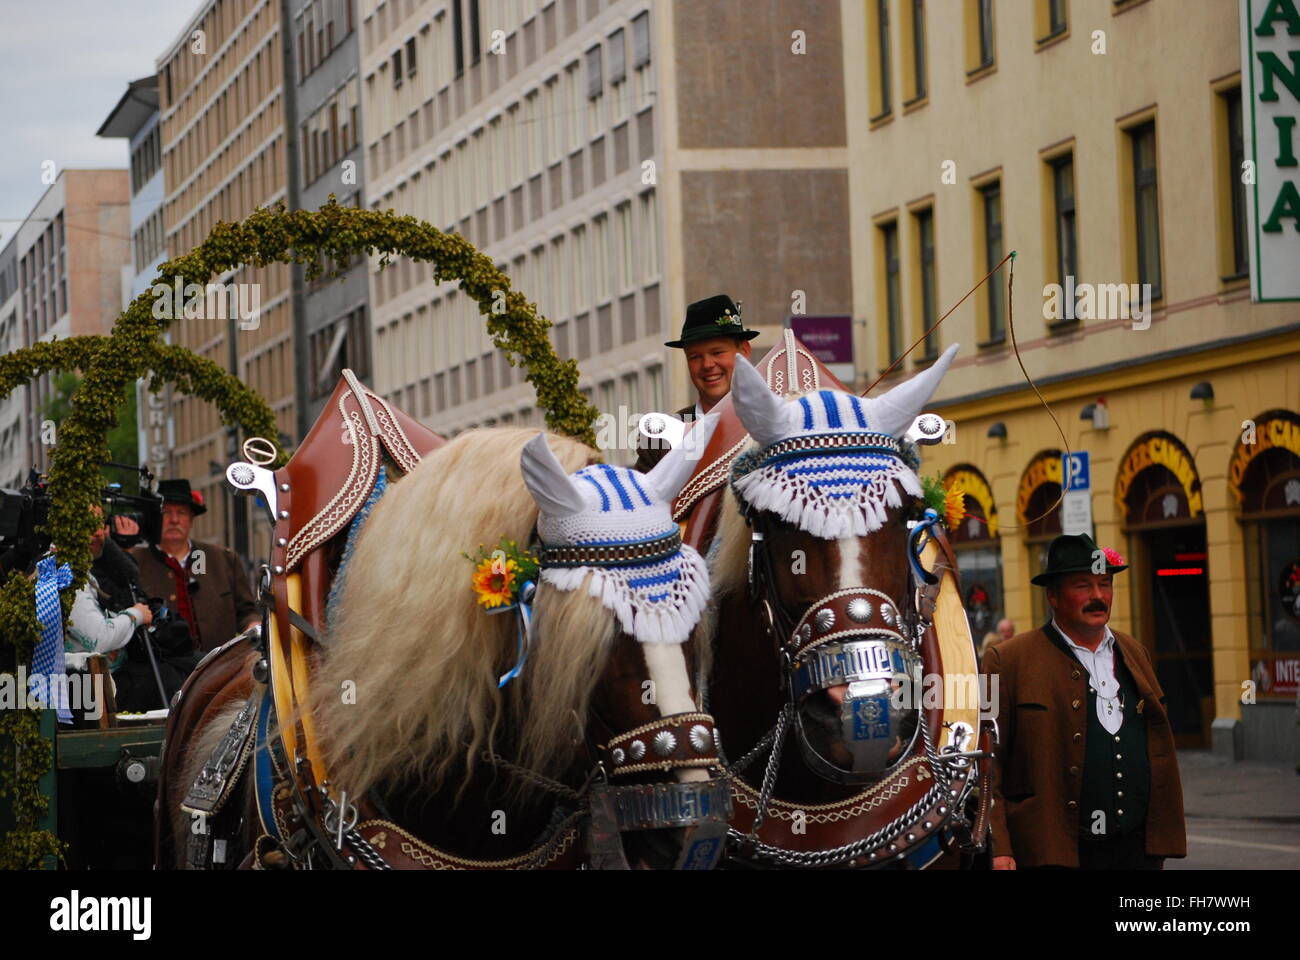 Brewery carriage on its way to brewers parade at 2015 Oktoberfest - Stock Image